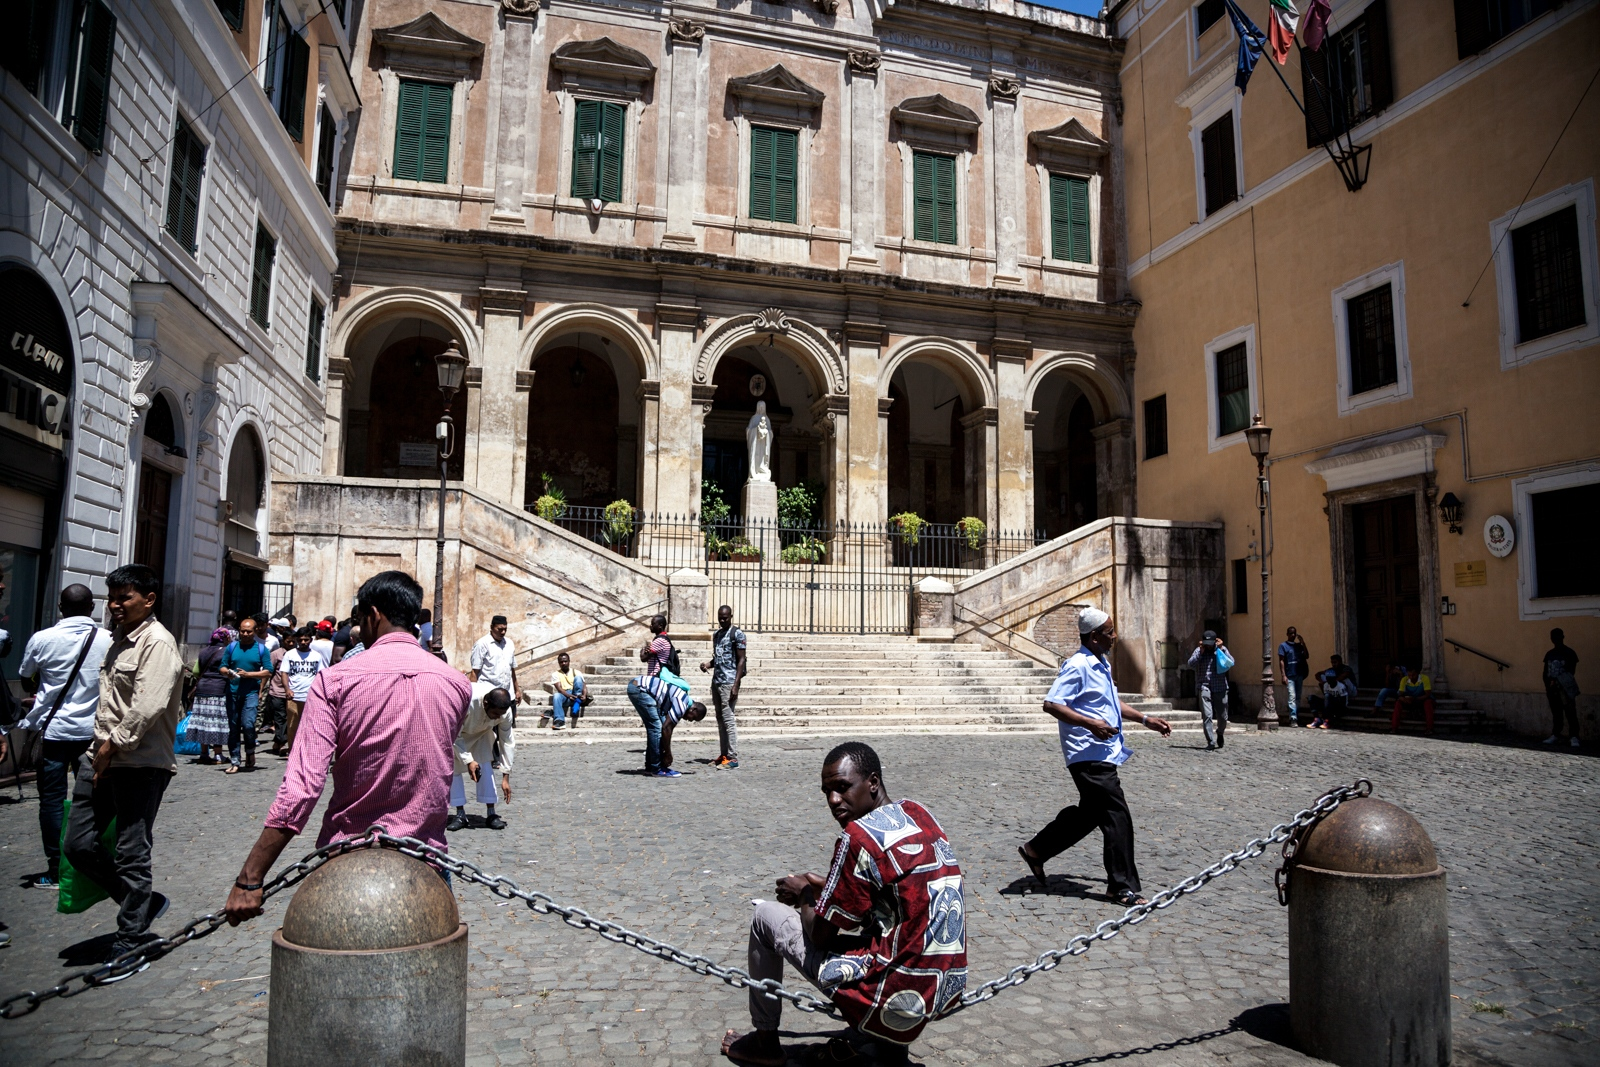 July 07, 2017 - After the Friday prayer, men leave a small Mosque next to a Catholic Church (Chiesa di Sant'Eusebio) in Piazza Vittorio, one of the most multicultural areas of Rome.